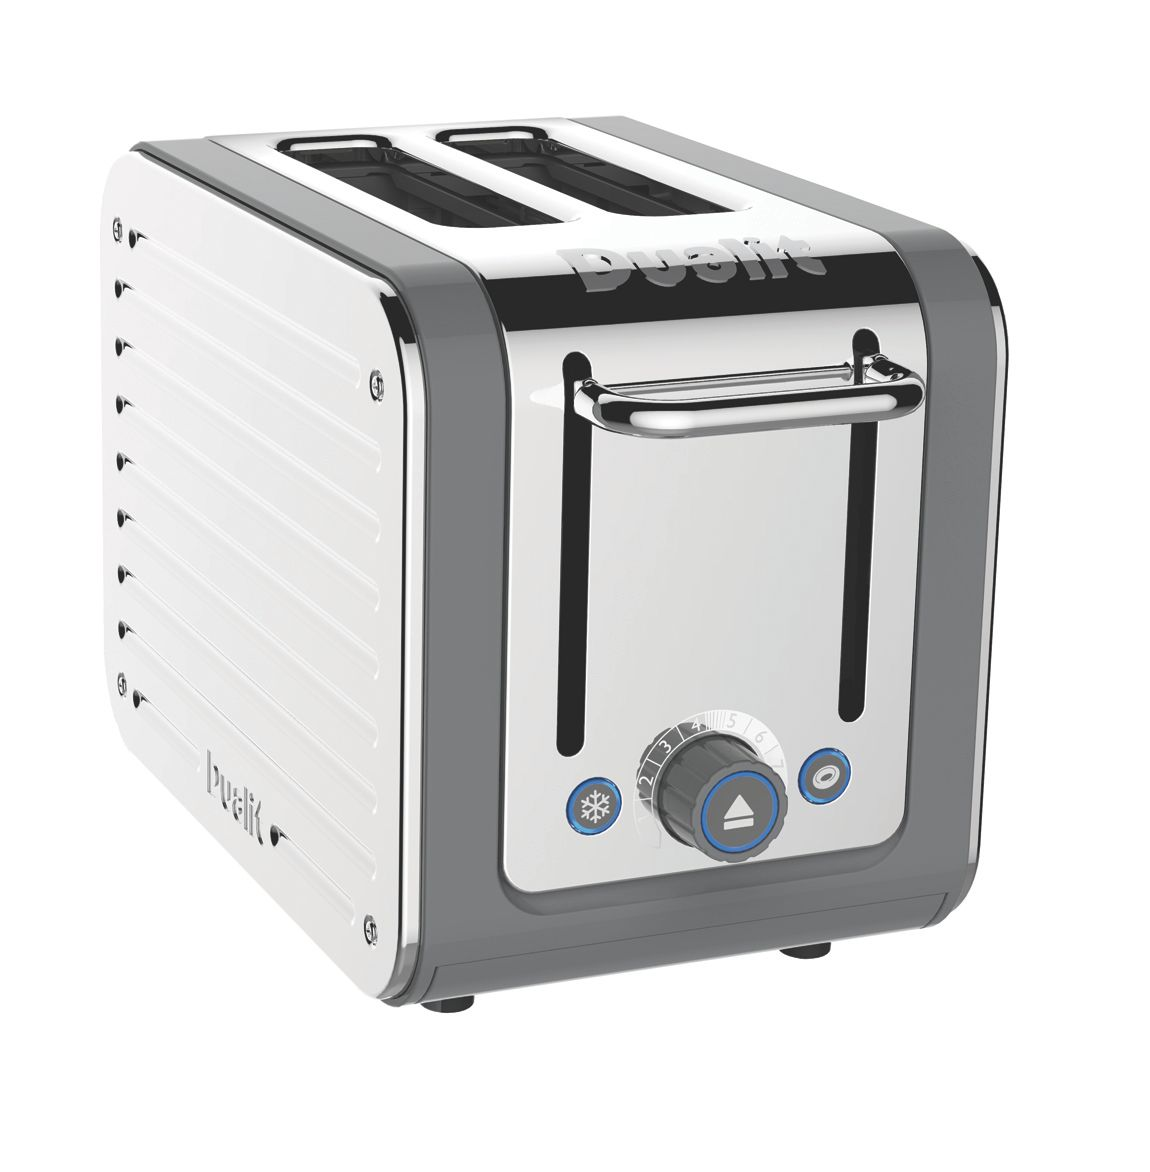 2 Slot Architec toaster grey 26526